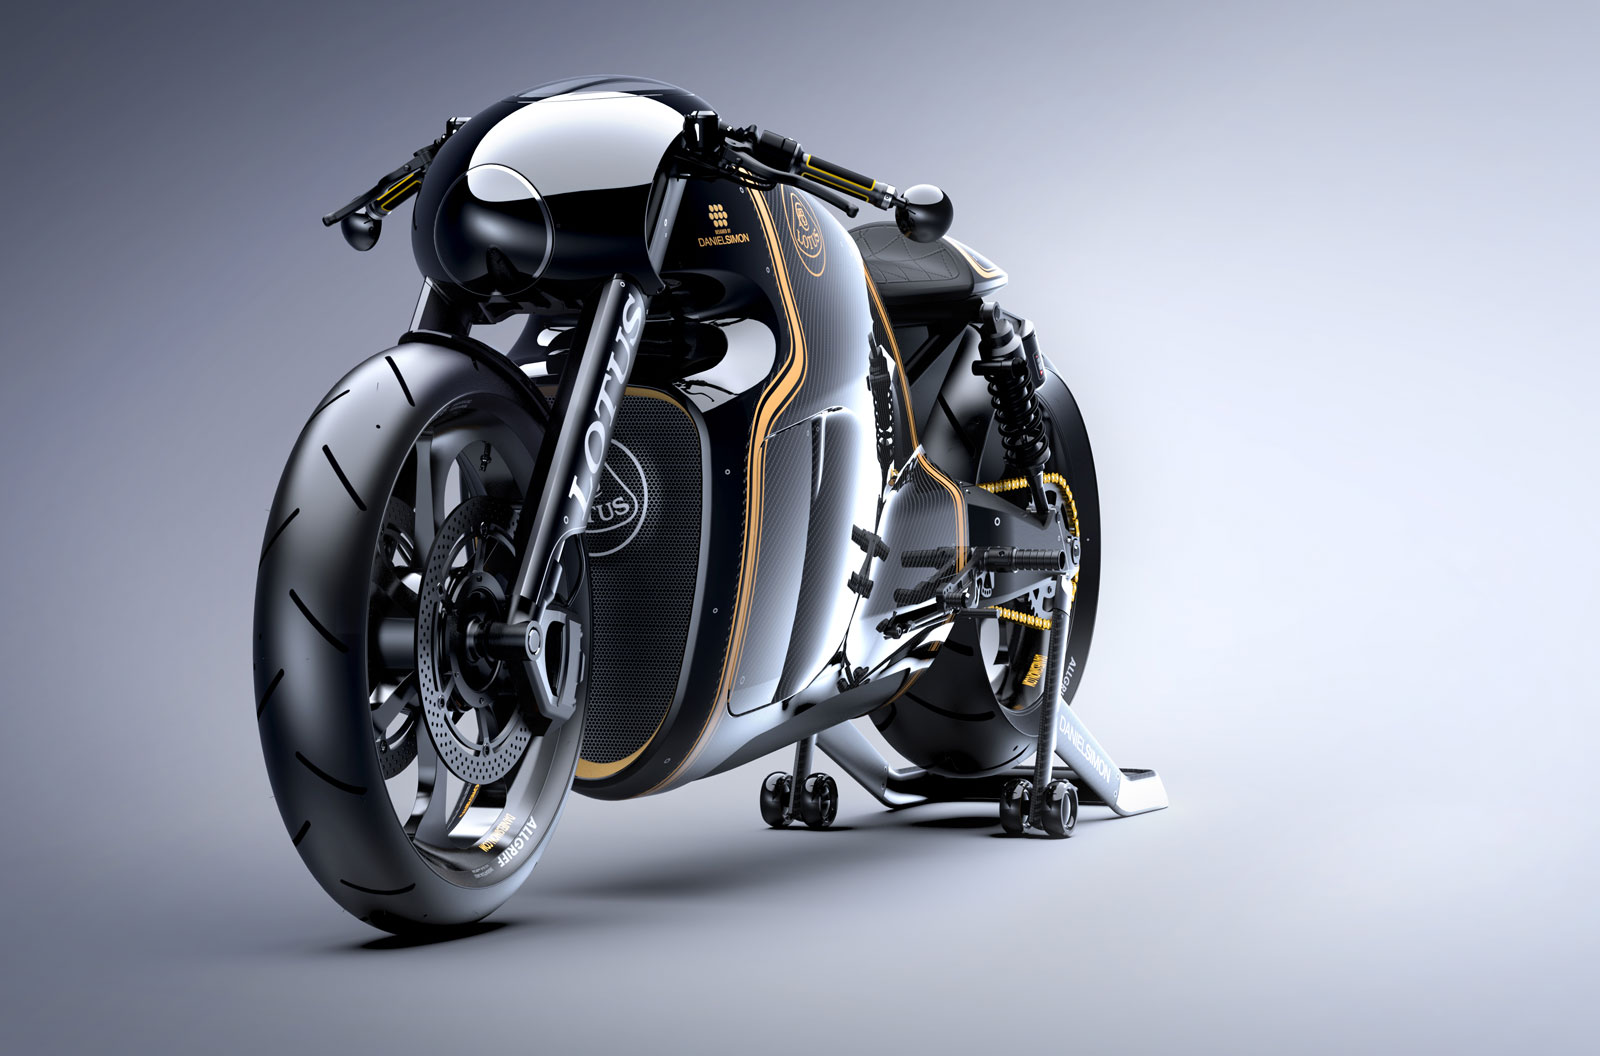 The Lotus C-01 Motorcycle by Daniel Simon